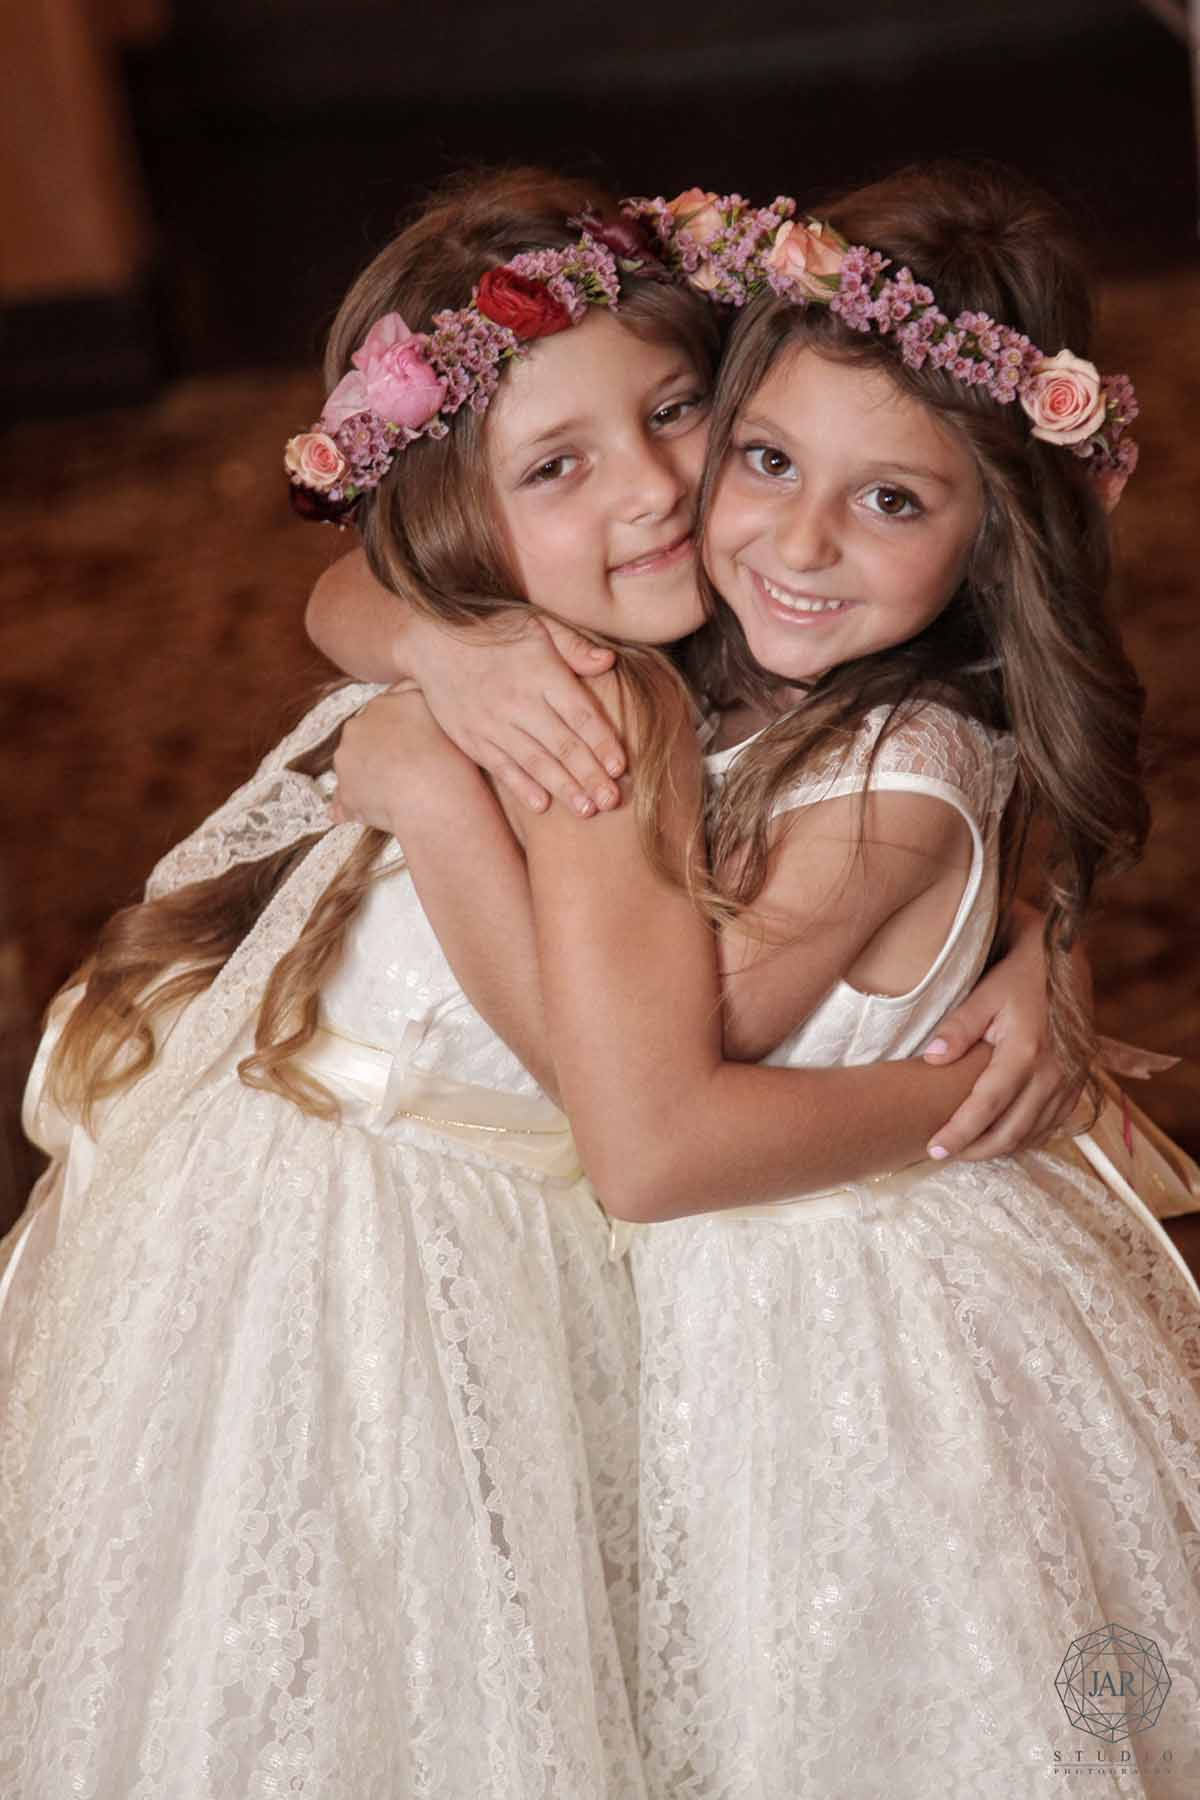 09-wedding-flower-girl-bella-collina-jarstudio-orlando-photography.jpg